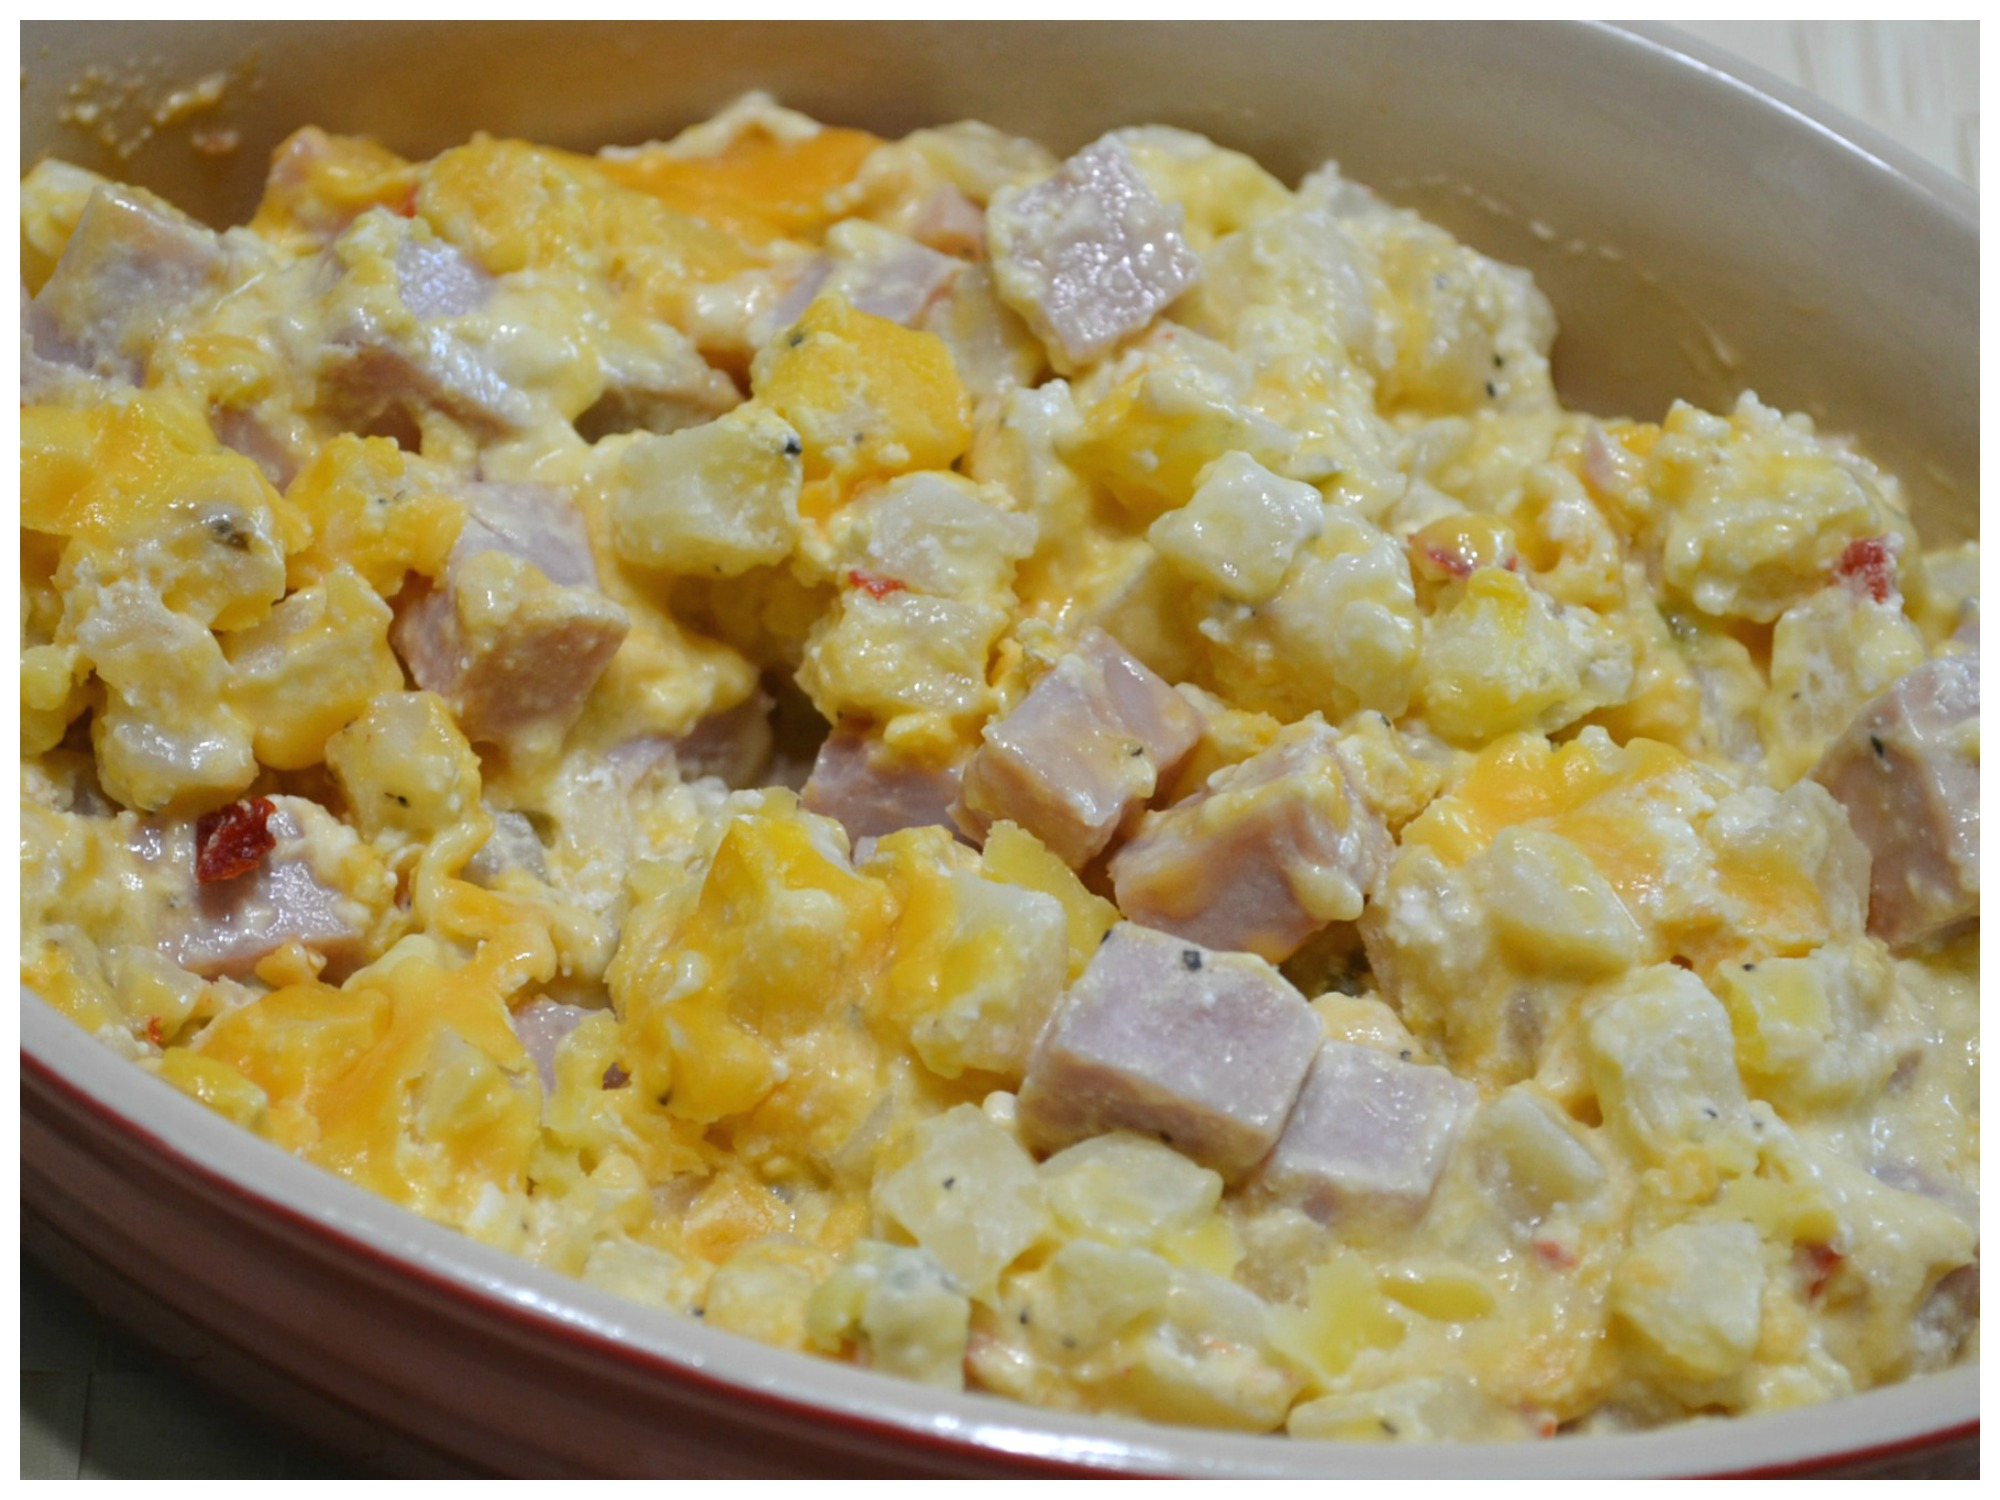 Hash brown casserole recipes with some added ingredients to make delicious variations.